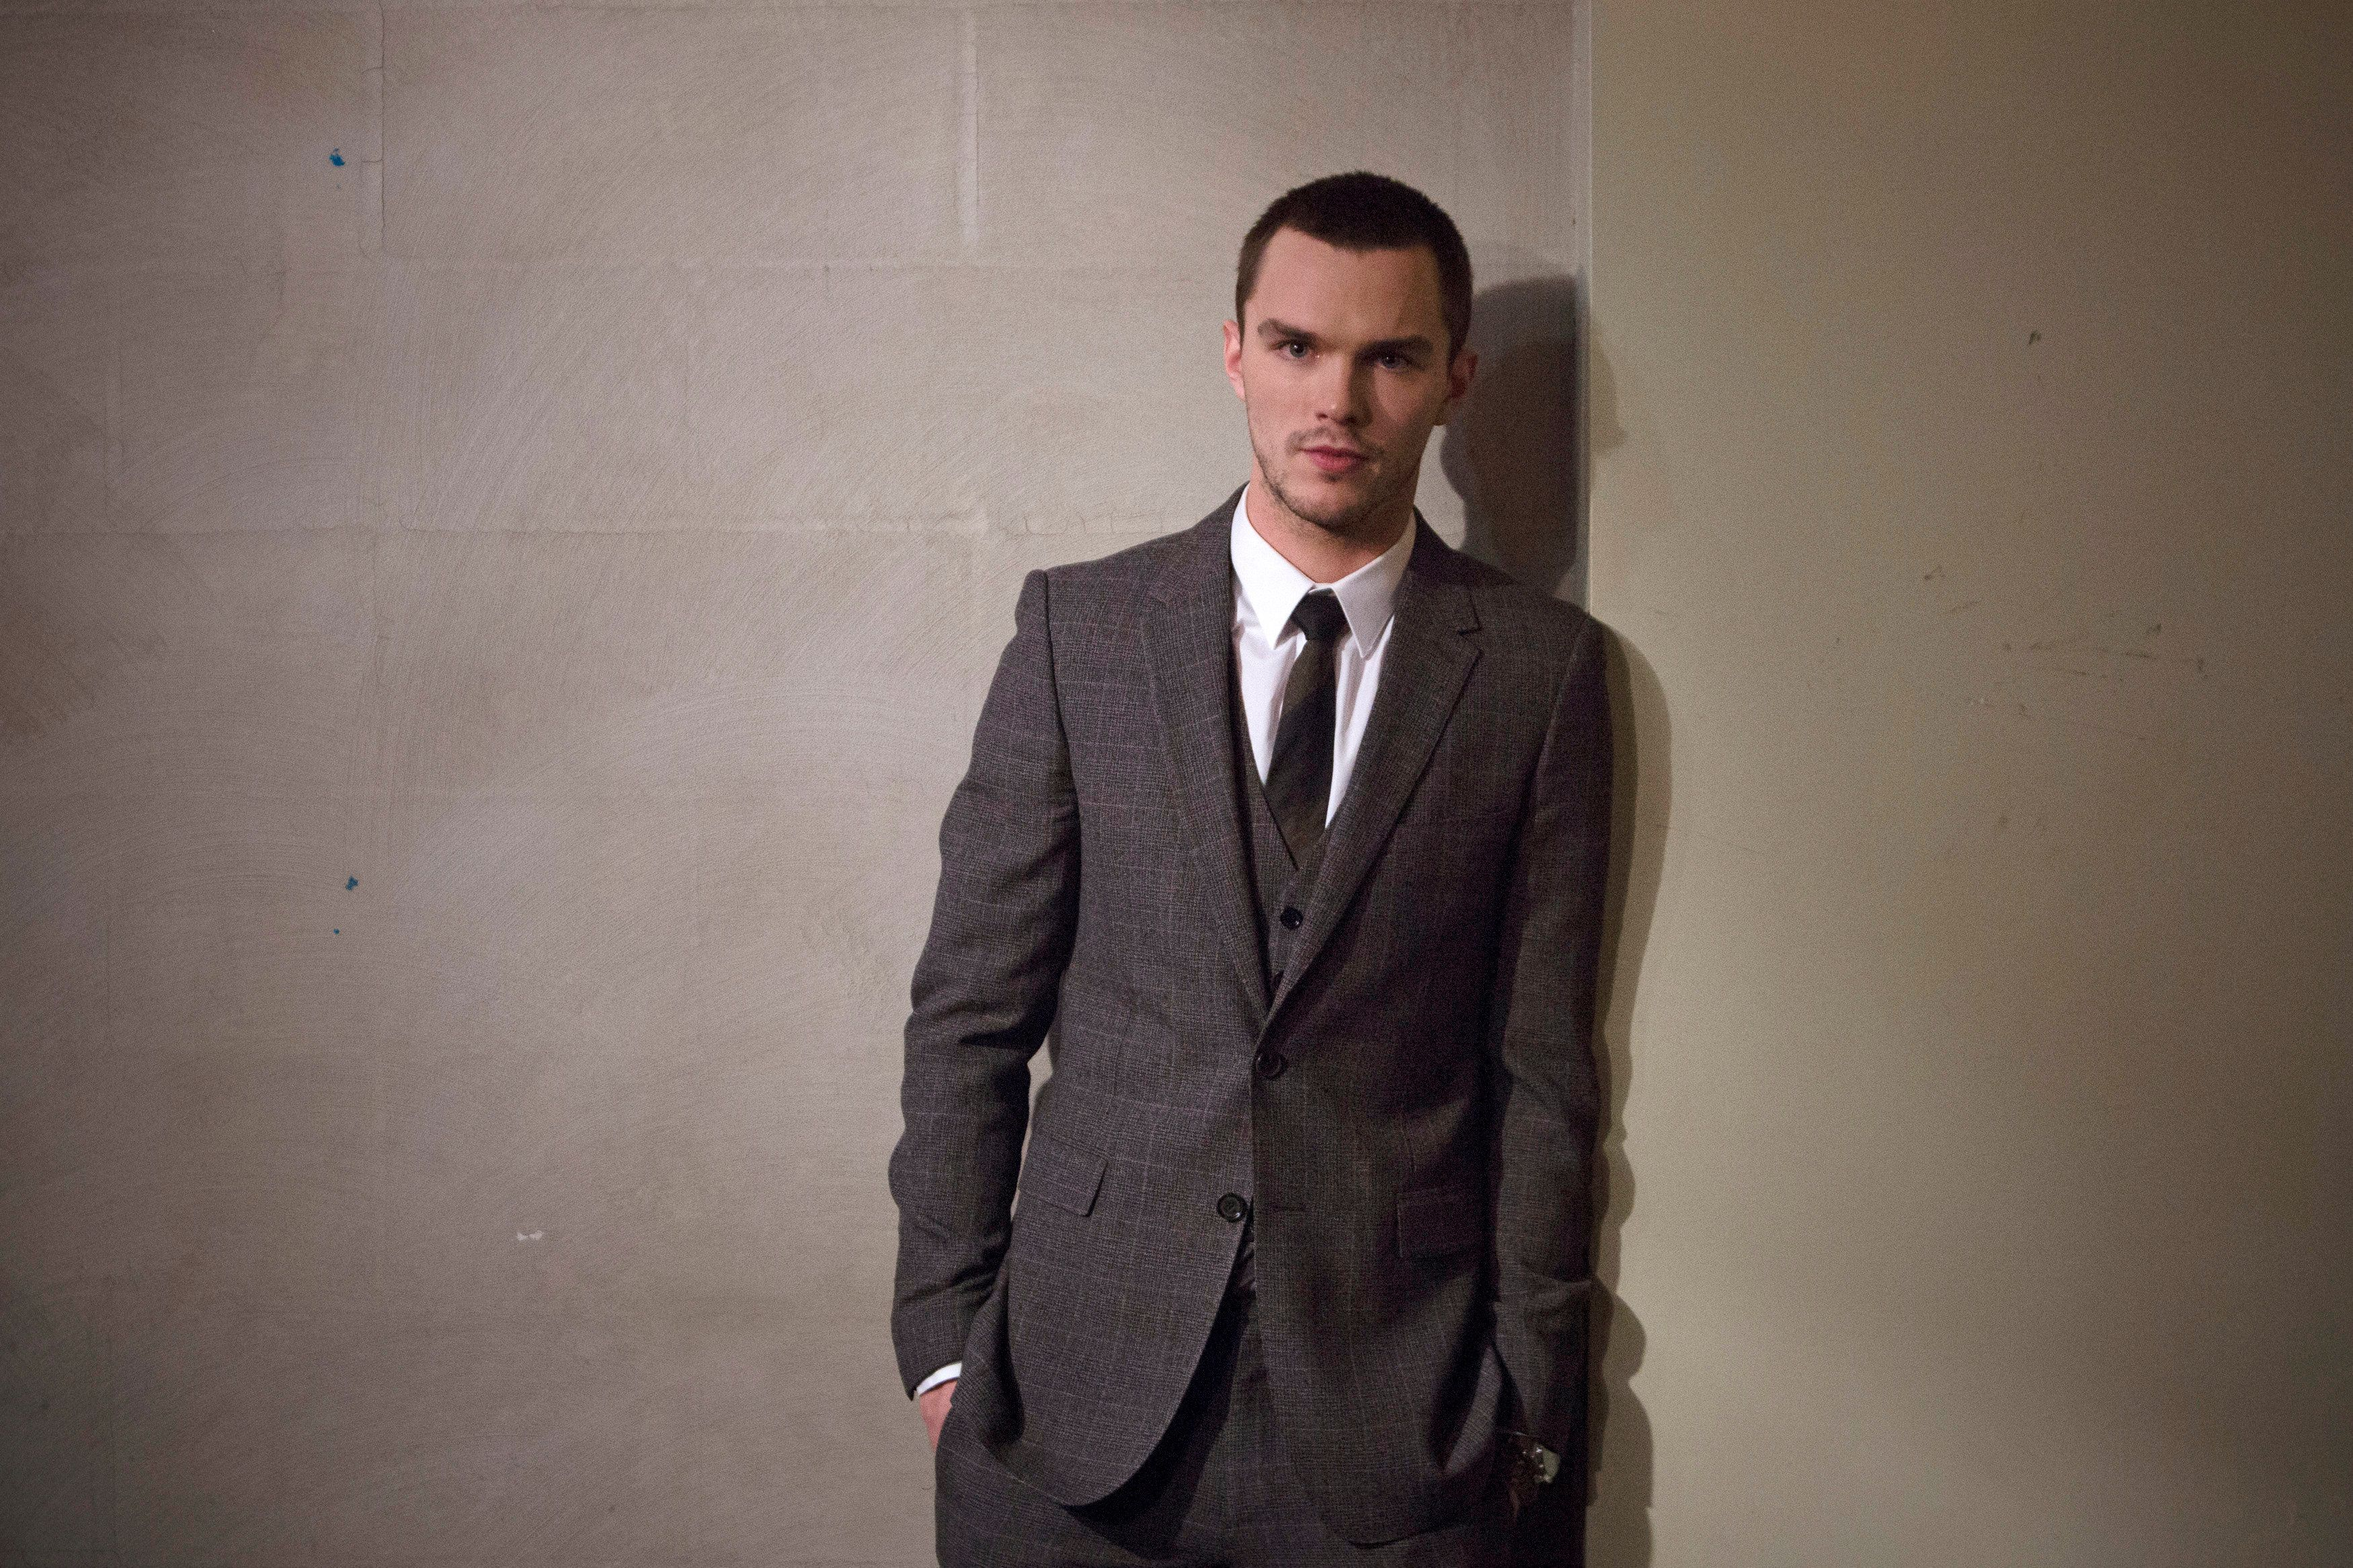 """British actor Nicholas Hoult attends a screening of the film """"Warm Bodies"""" in New York January 25, 2013. REUTERS/Andrew Kelly (UNITED STATES - Tags: ENTERTAINMENT PROFILE)"""